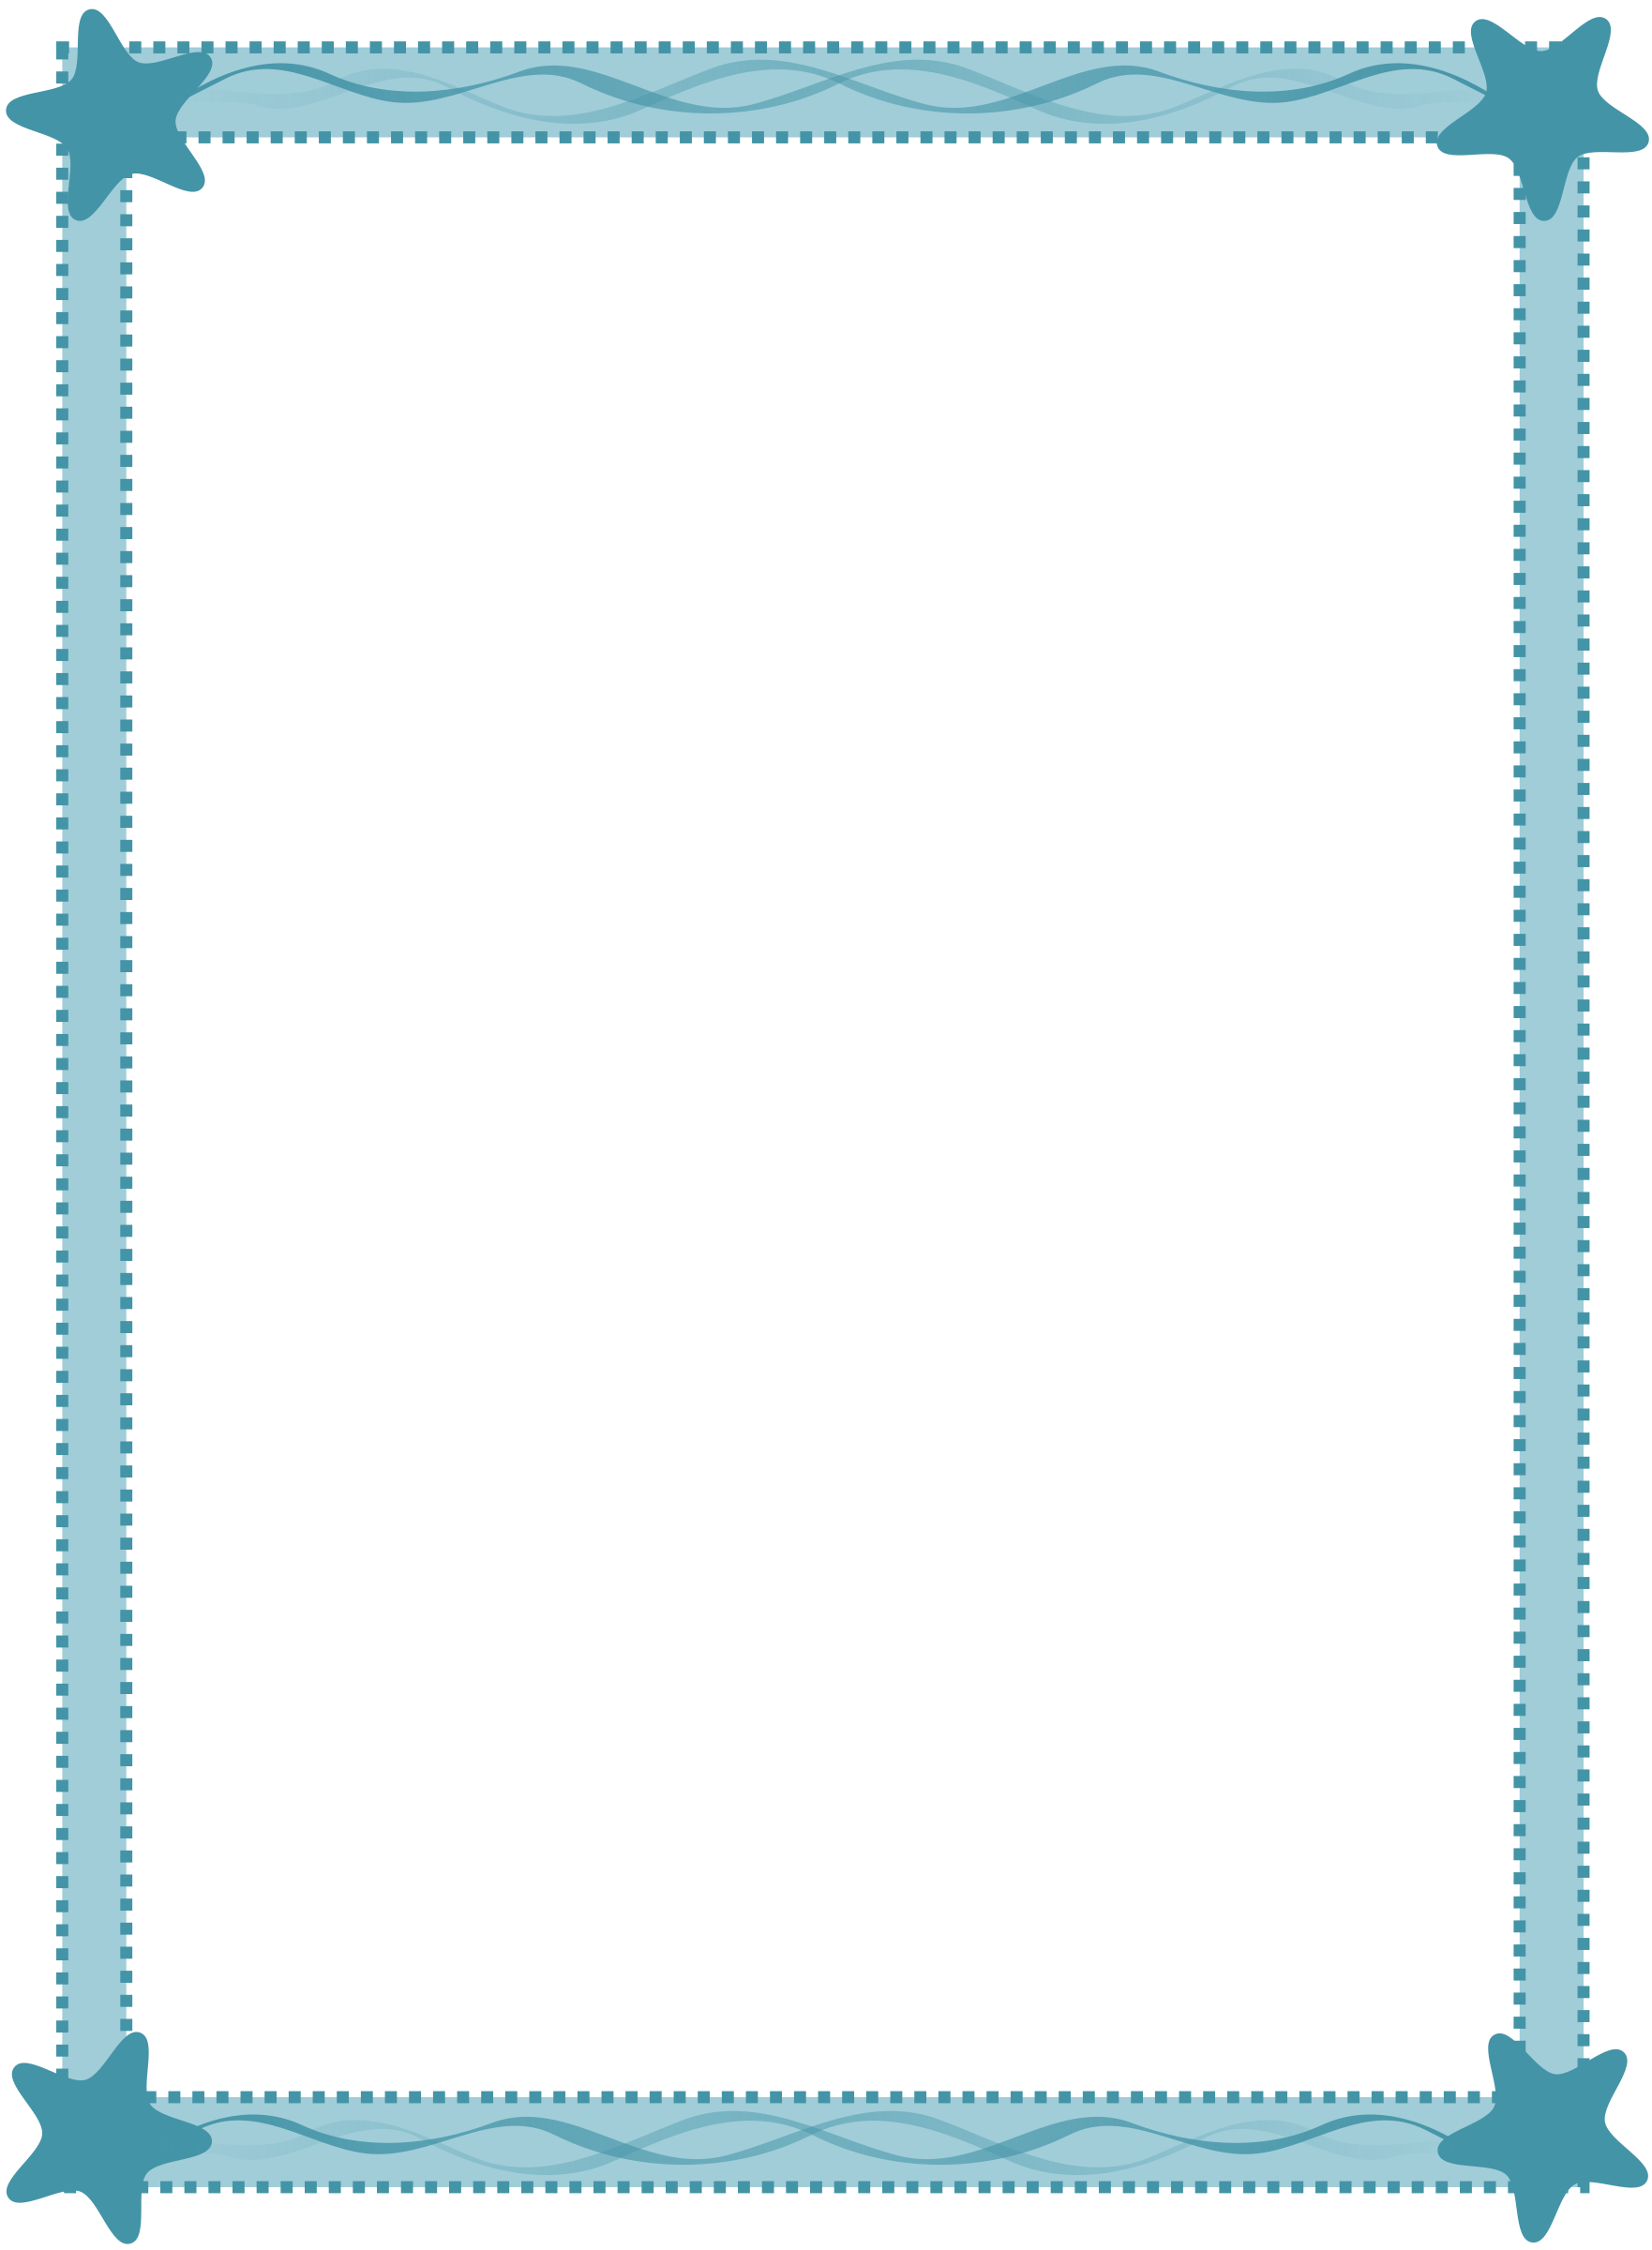 Baby border png. Clipart sea frame big